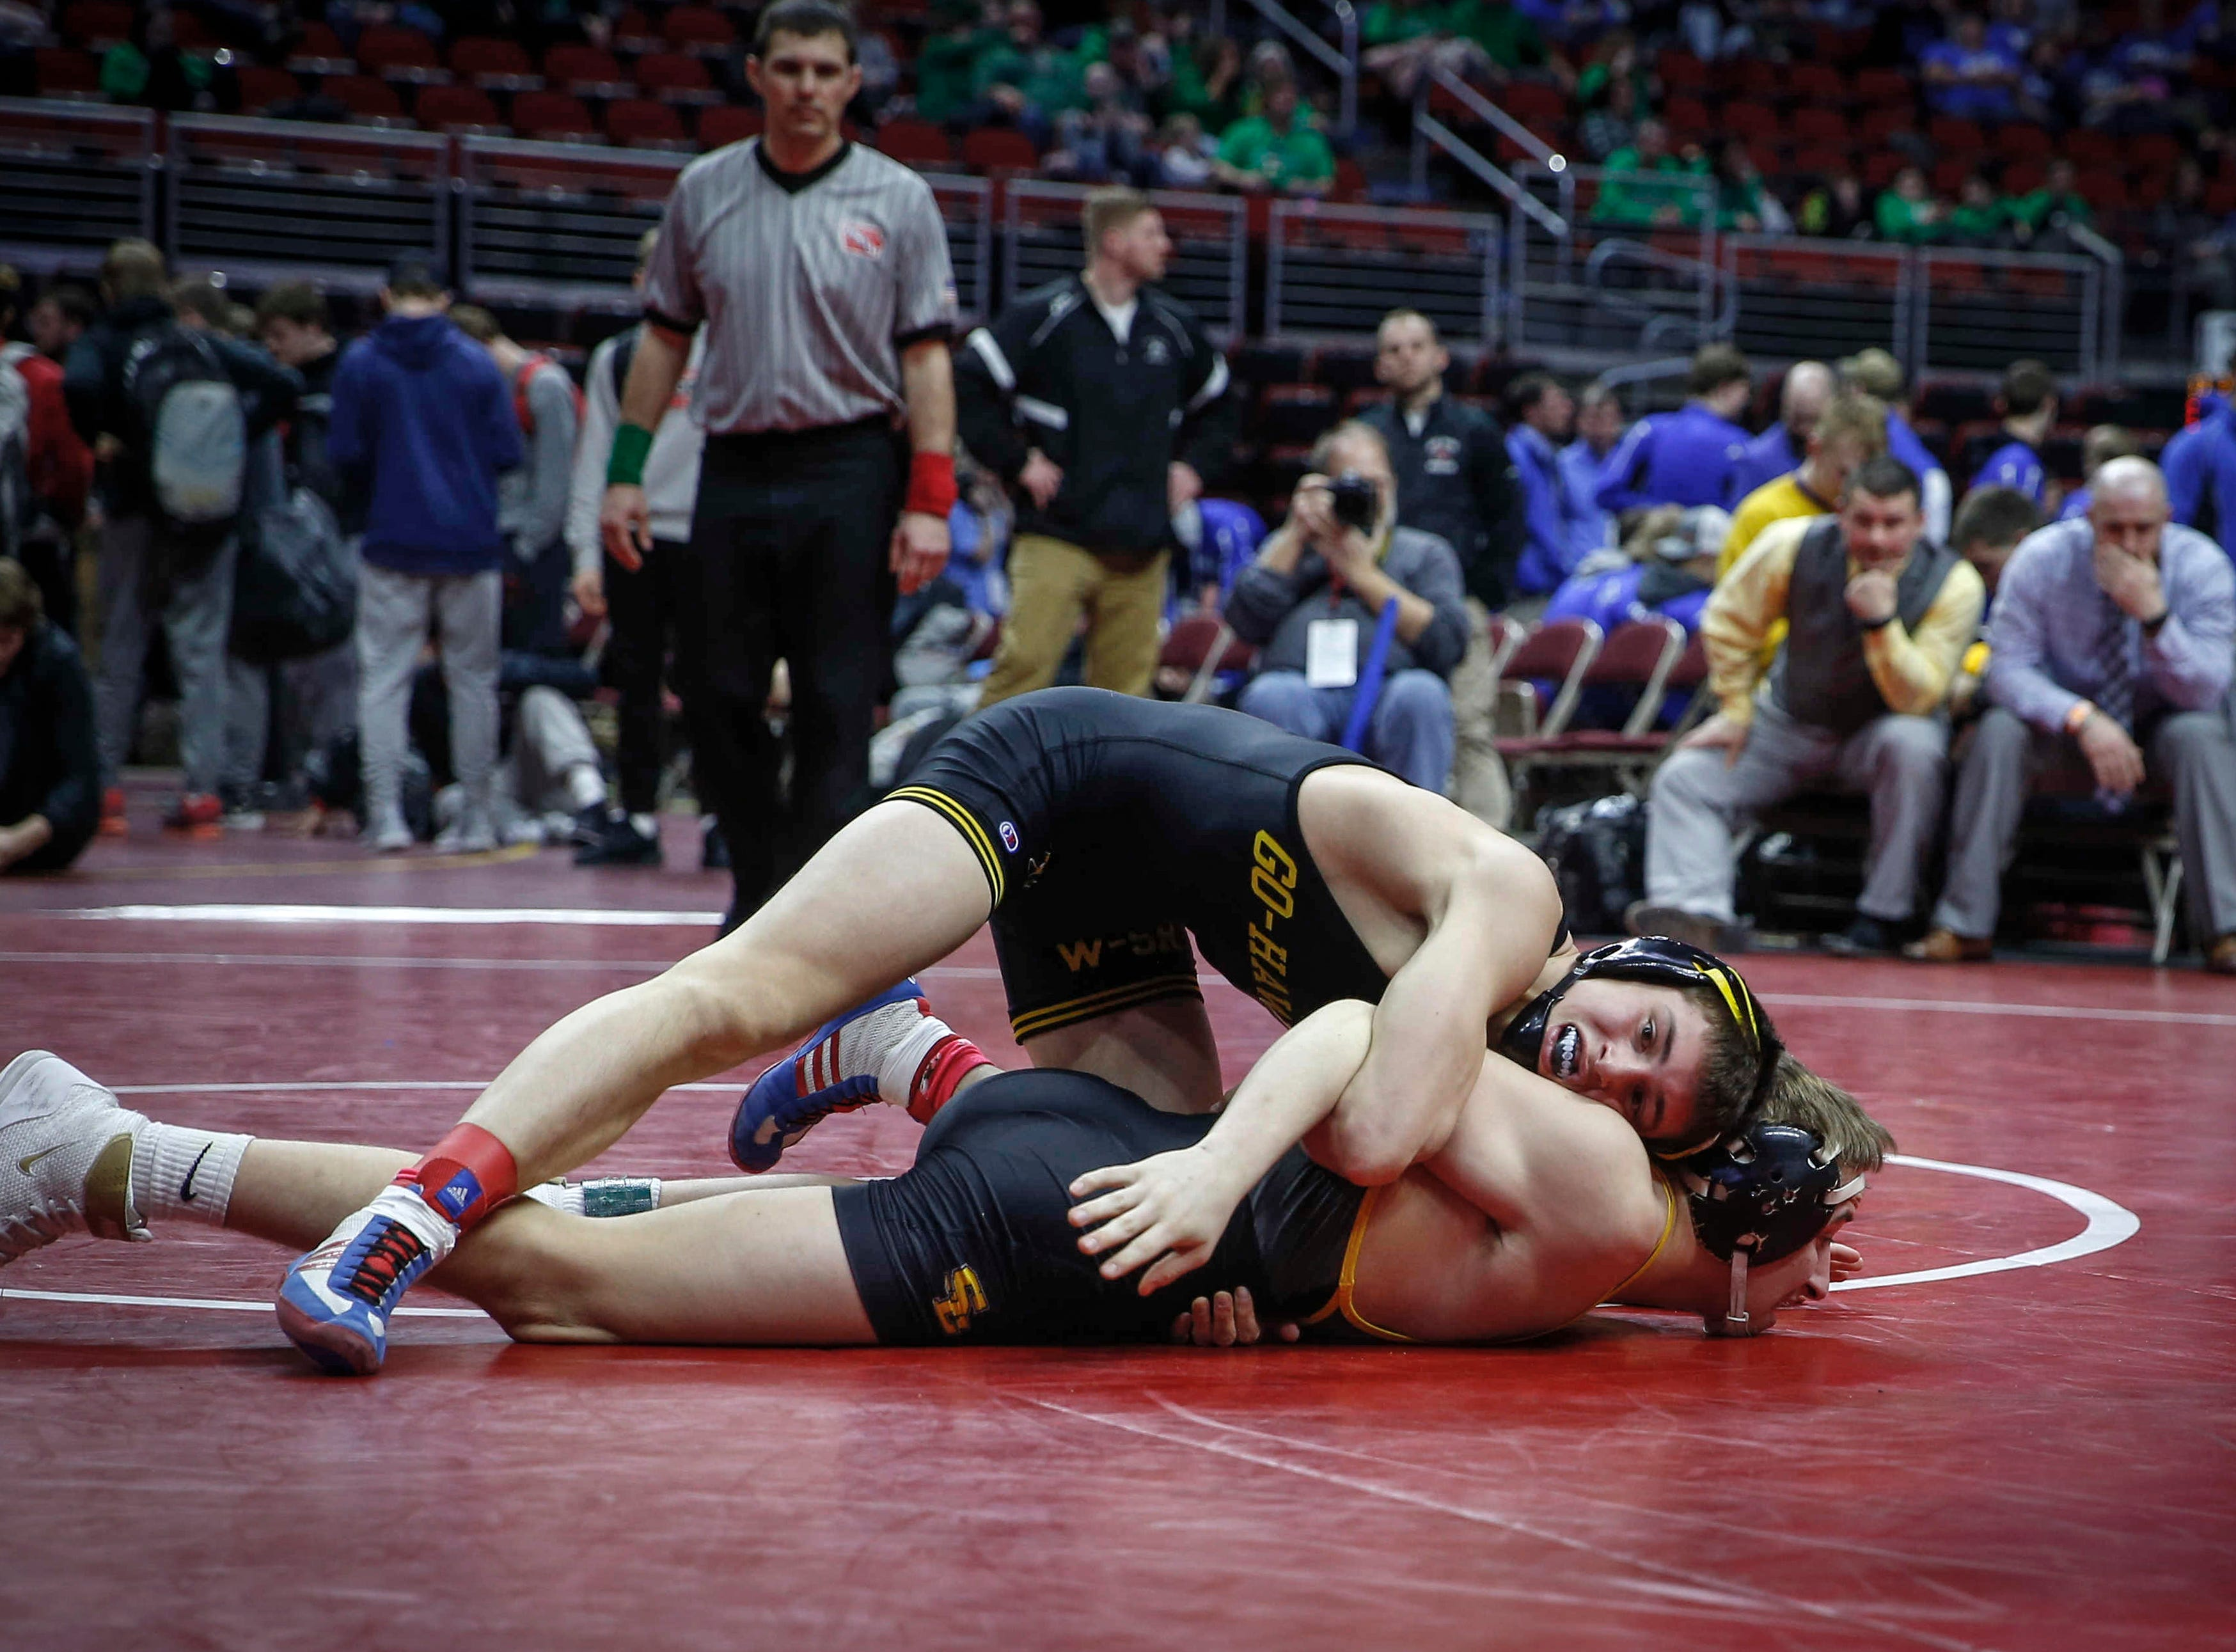 Waverly-Shell Rock's Evan Yant works to control Southeast Polk's Carson Martinson at 132 pounds during the 2019 Iowa high school dual wrestling state tournament on Wednesday, Feb. 13, 2019, at Wells Fargo Arena in Des Moines.